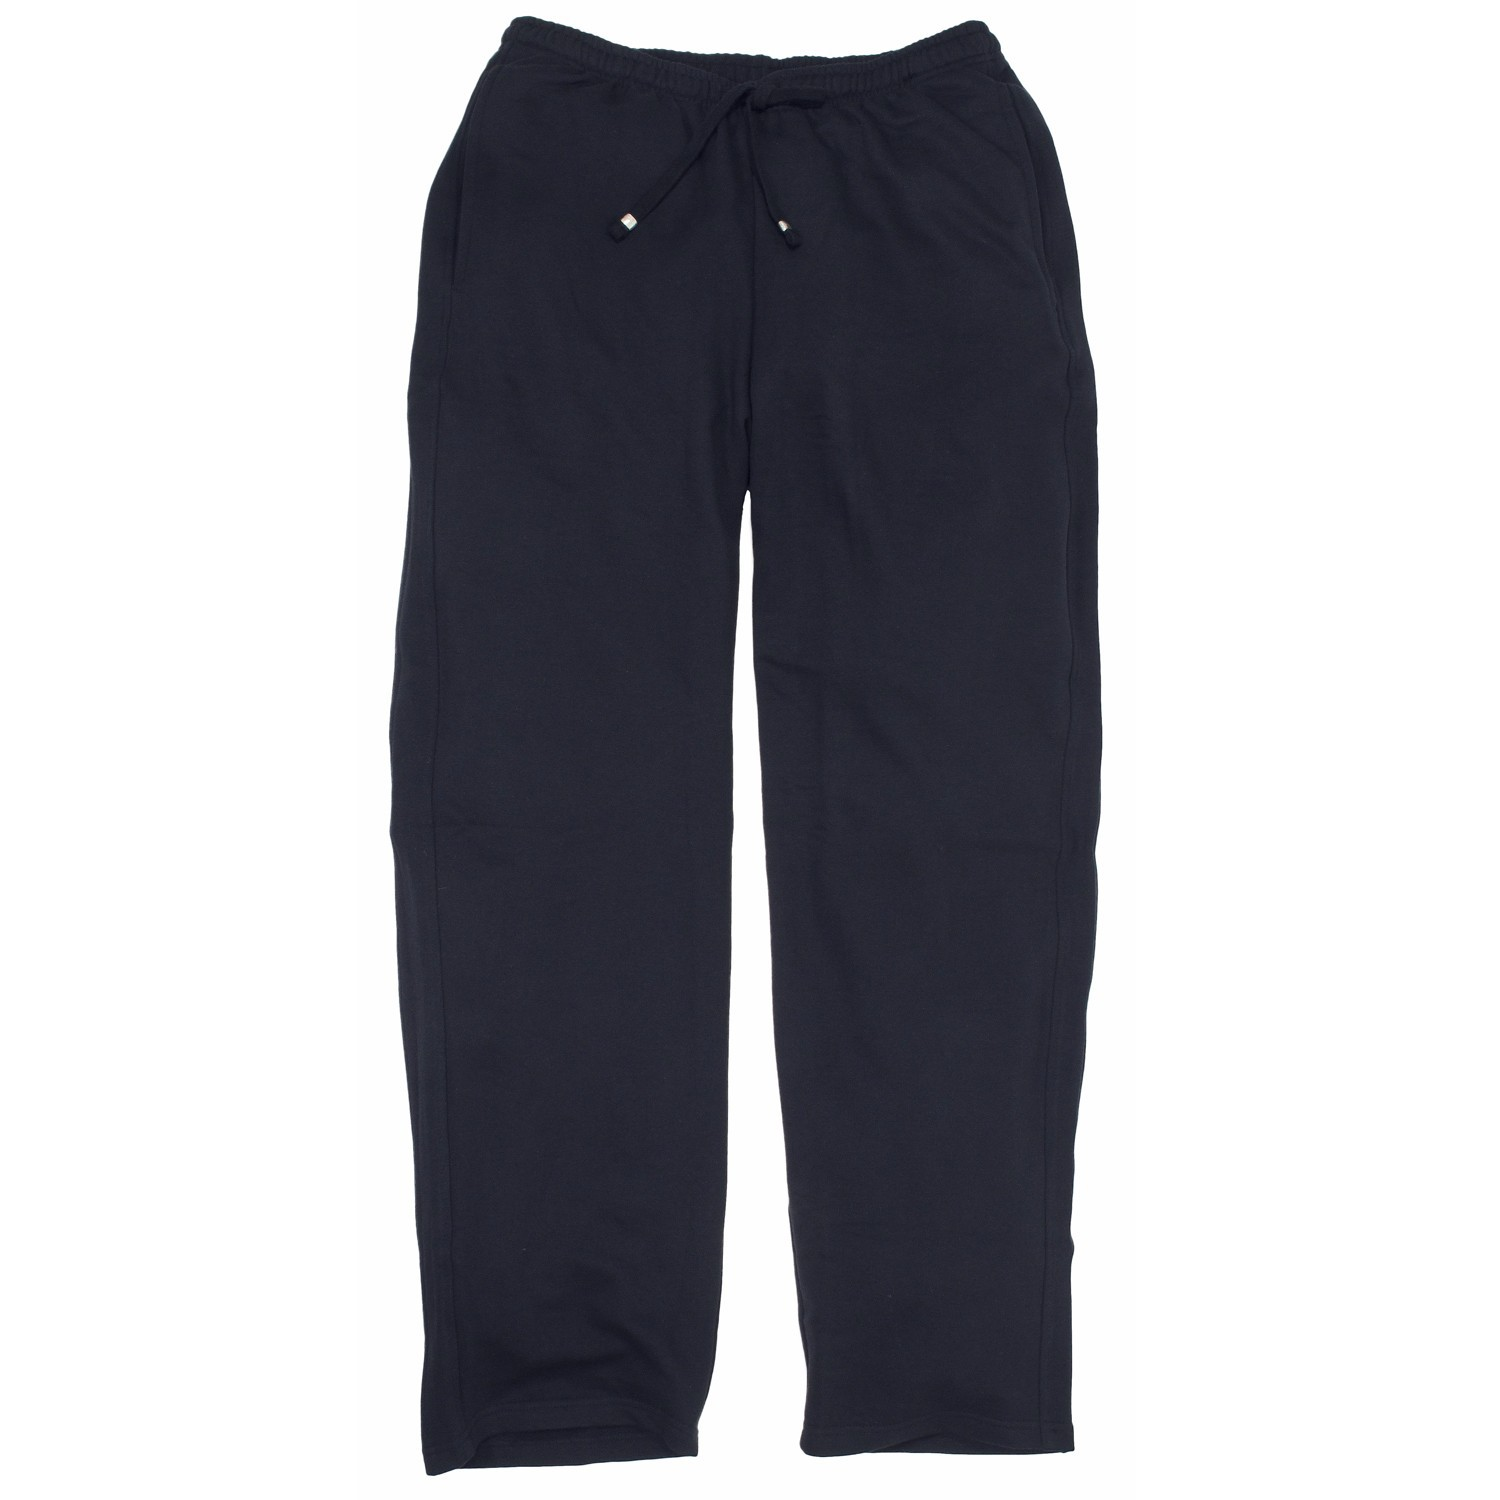 Detail Image to Sweat pants in dark blue by Redfield in oversizes up to 8XL